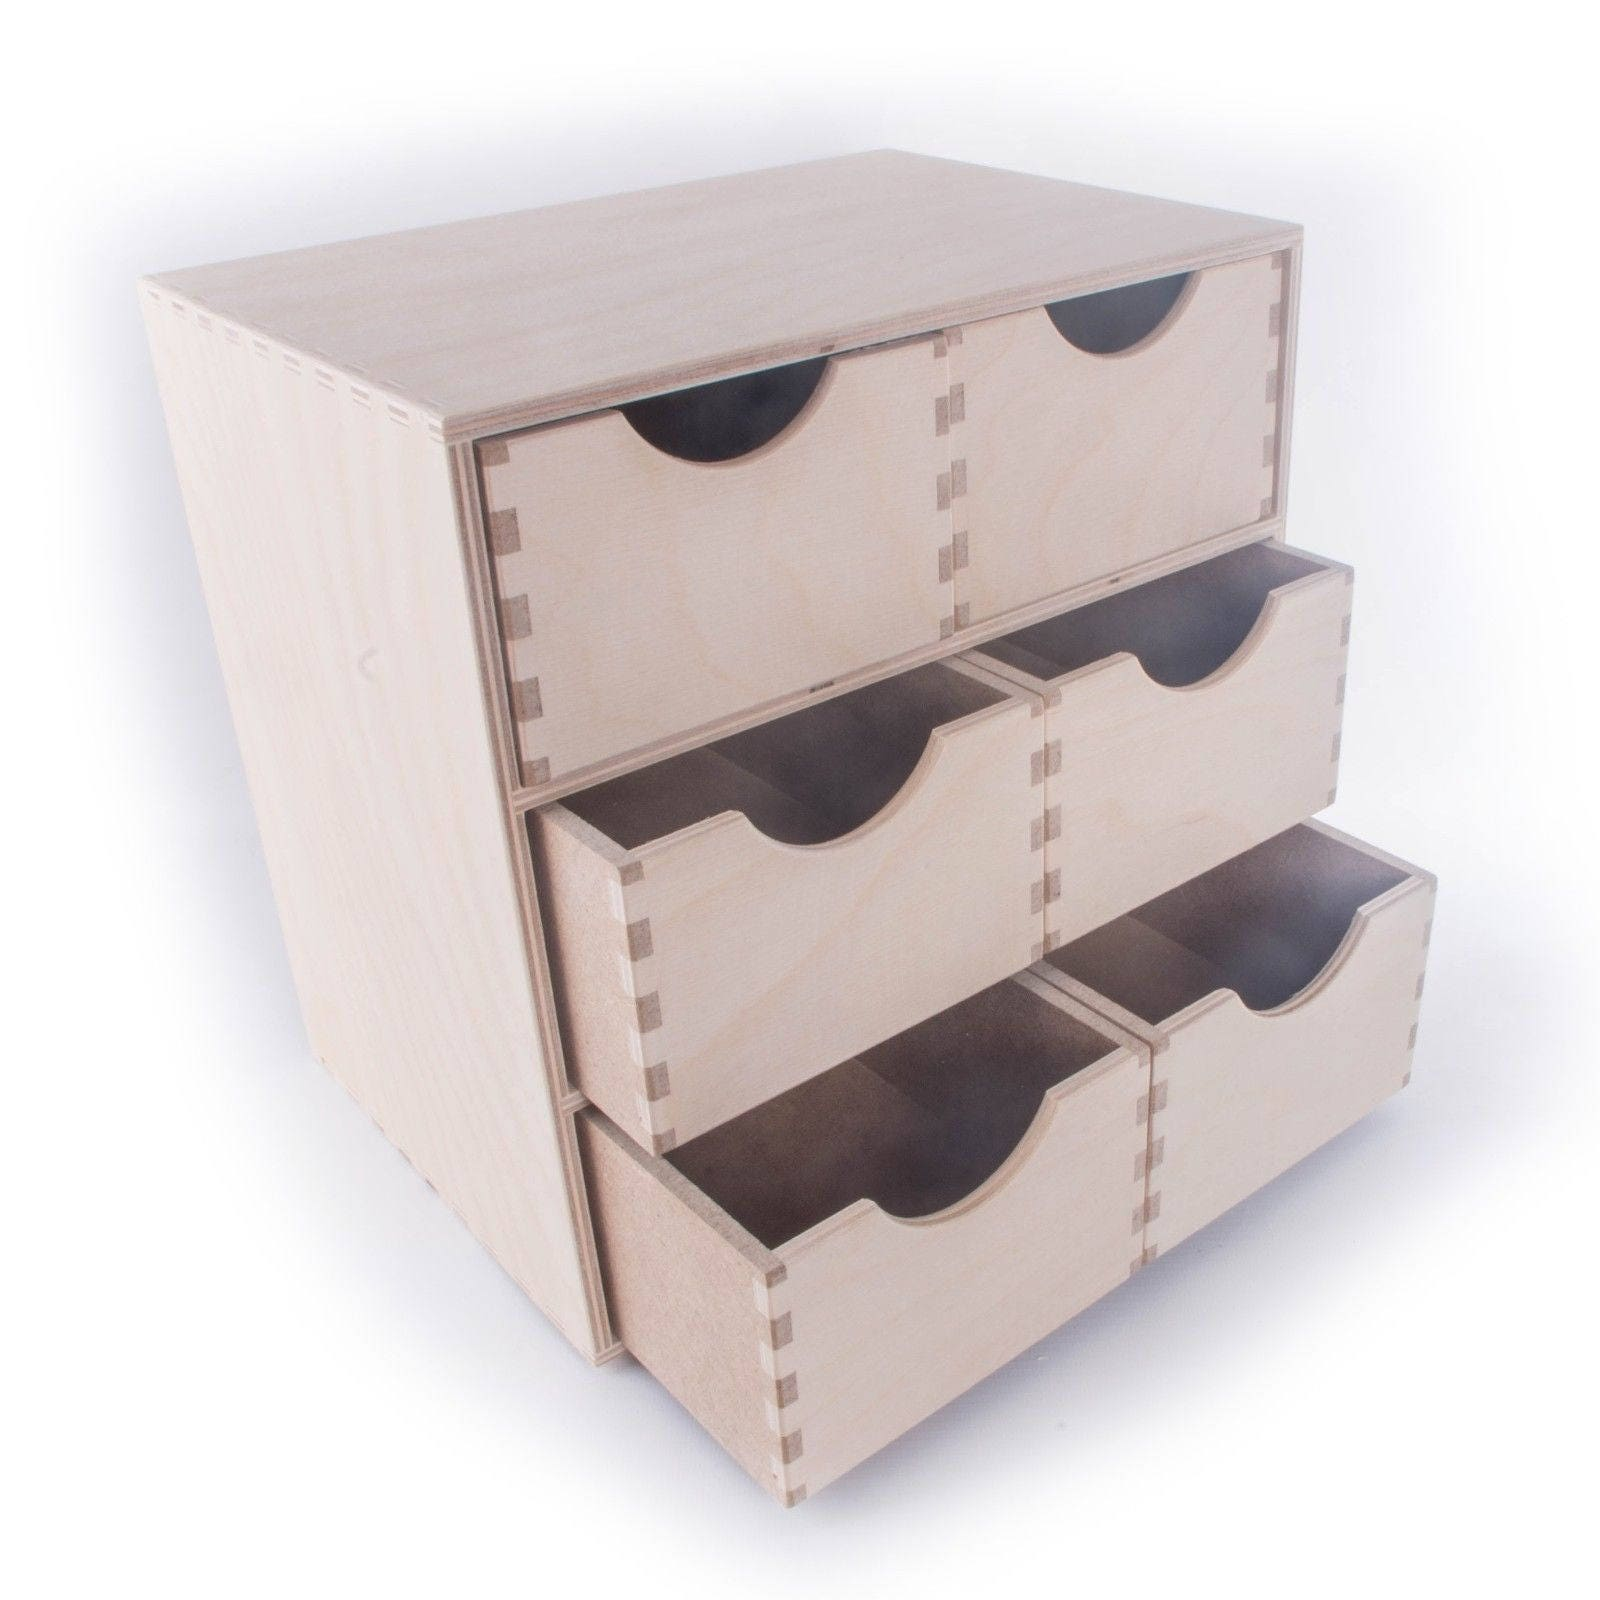 Wooden Mini Chest Of Drawers Storage Box Organiser Plain Unpainted 6 Drawers Plywood L280mm X D200mm X H280mm